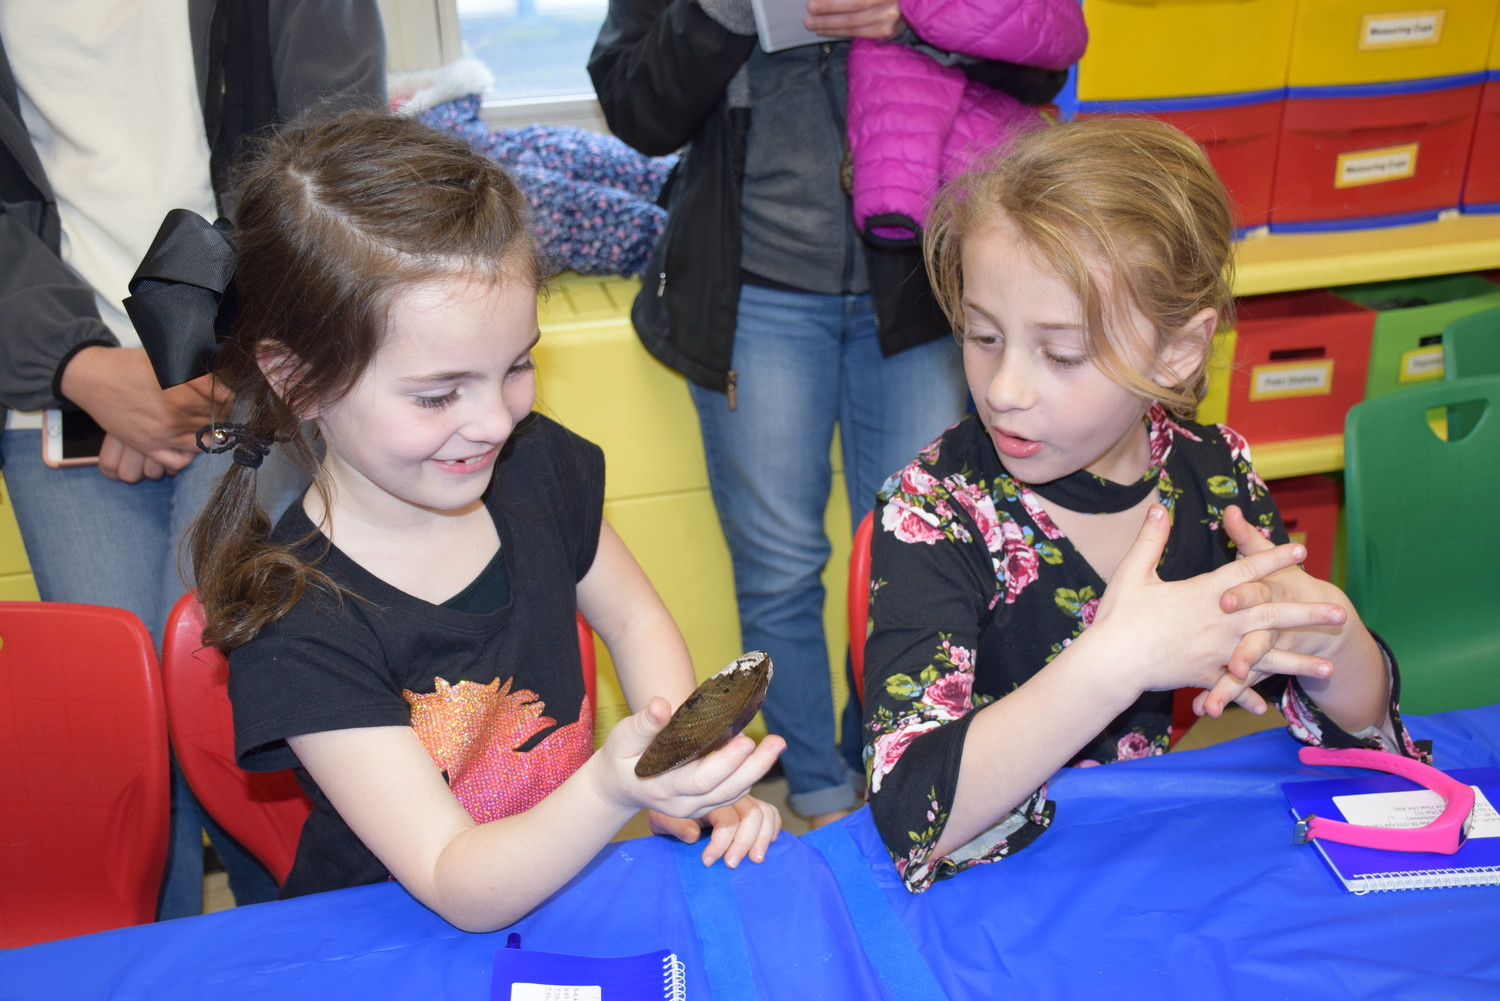 Mandalay Elementary School students Isabella Conforte, left, and Mia Rispoli examine a clamshell during an ecology activity at the school's STEAM night on April 24.